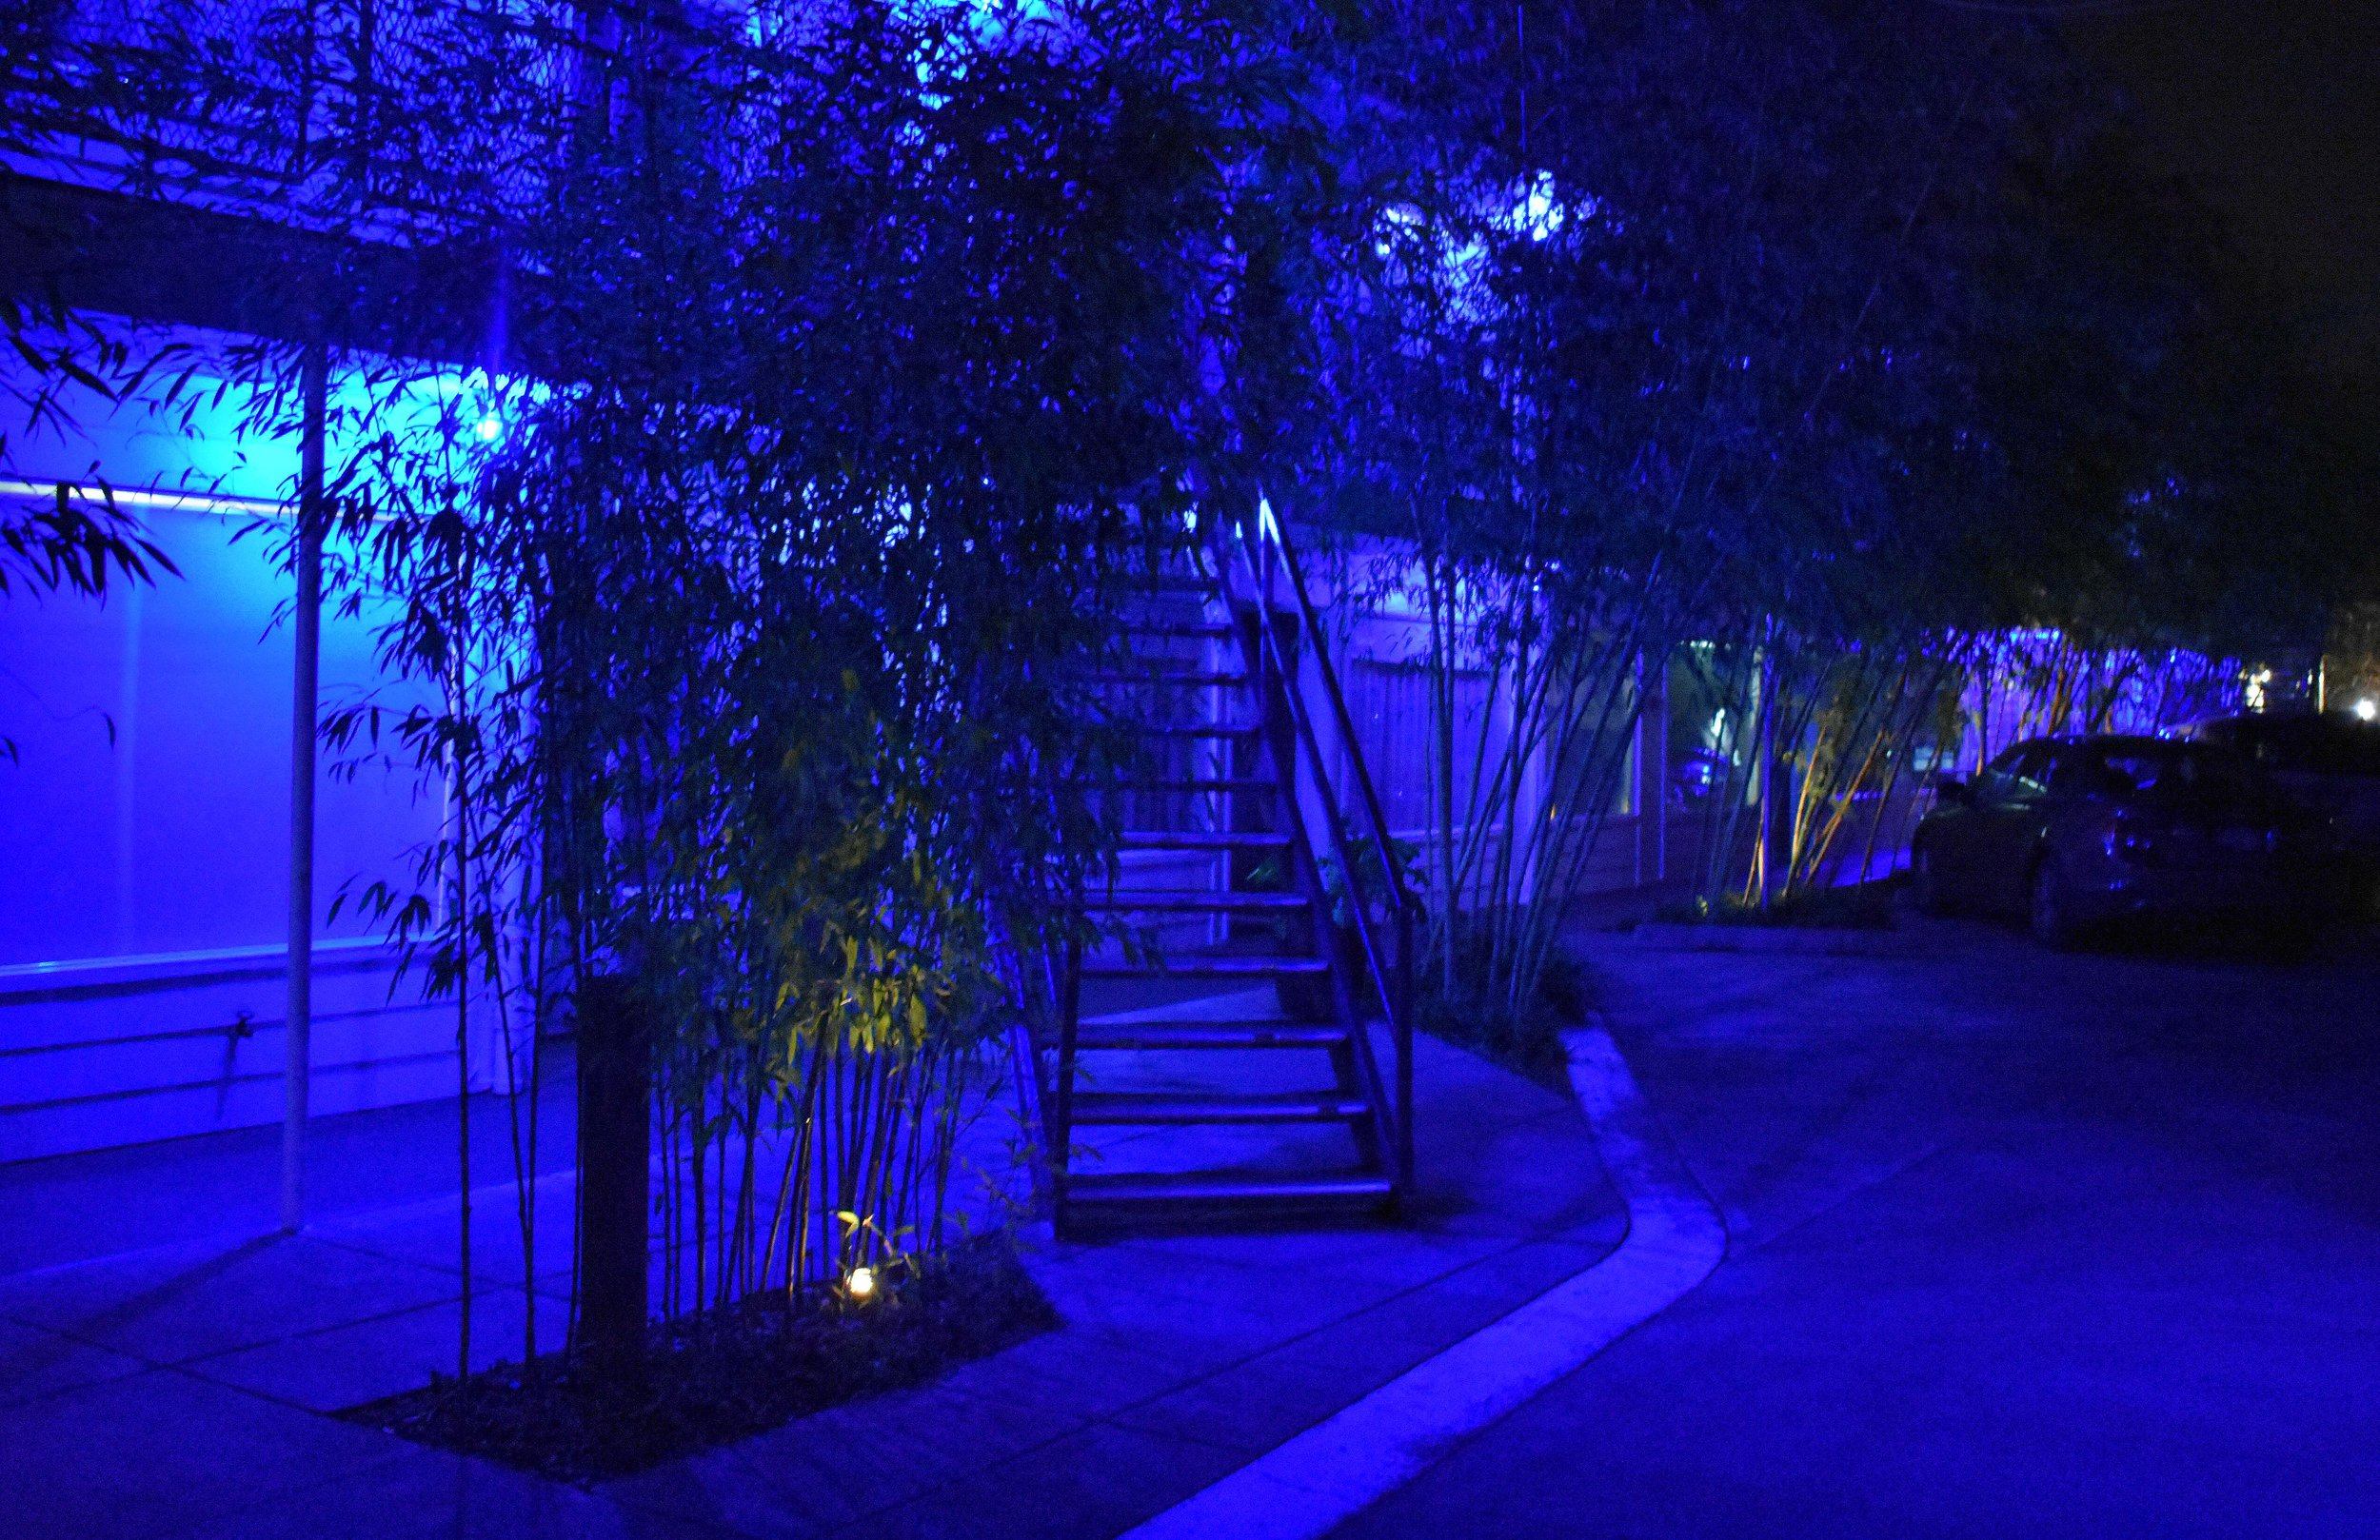 The vibe of Jupiter Hotel at night was just as fun and as the hotel itself, I particularly loved the blue lights (seemed to be the perfect way to add a whole new vibe to the outside of a renovated motel). The bamboo plants around the parking lot also gave the rooms on the ground floor a bit of privacy.  Addtionaly you'll find in the parking lot near the lobby of Jupiter Hotel, an electric car charging station.